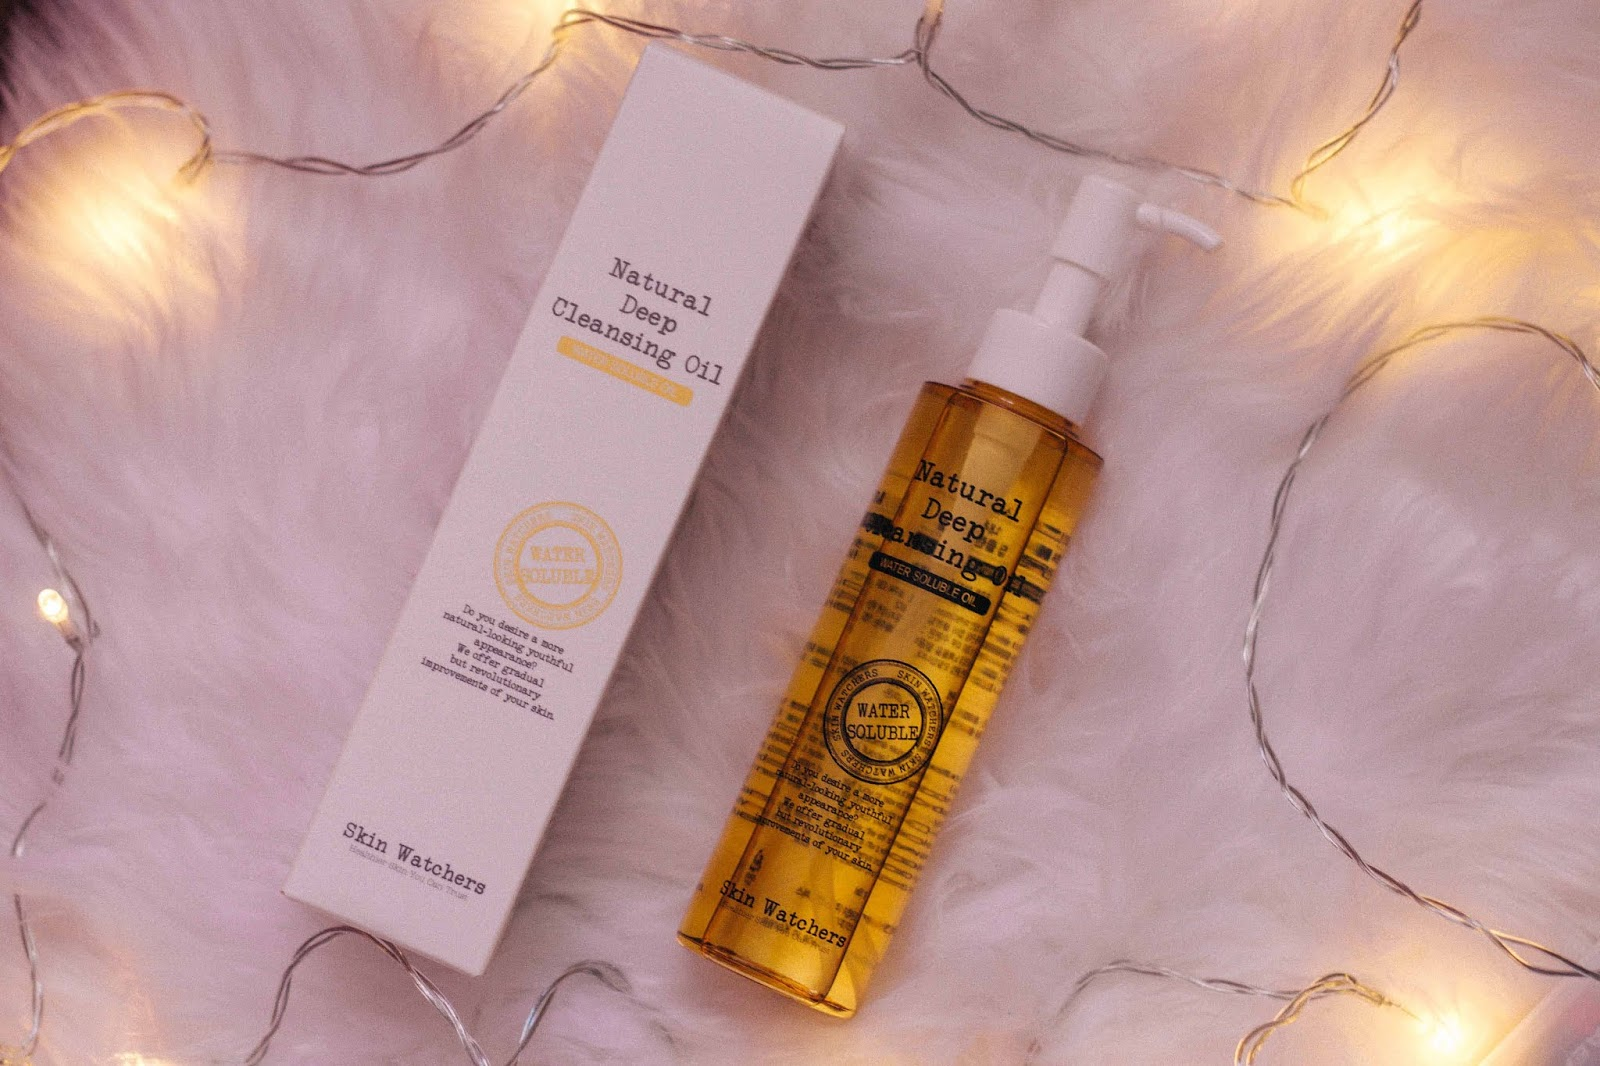 """Skin Watchers Natural Deep Cleansing Oil is a natural cleansing oil that is formulated with Natural Apricot Oil, Macadamia Seed Oil, Meadowfoam Seed Oil, and Bergamot Oil. """